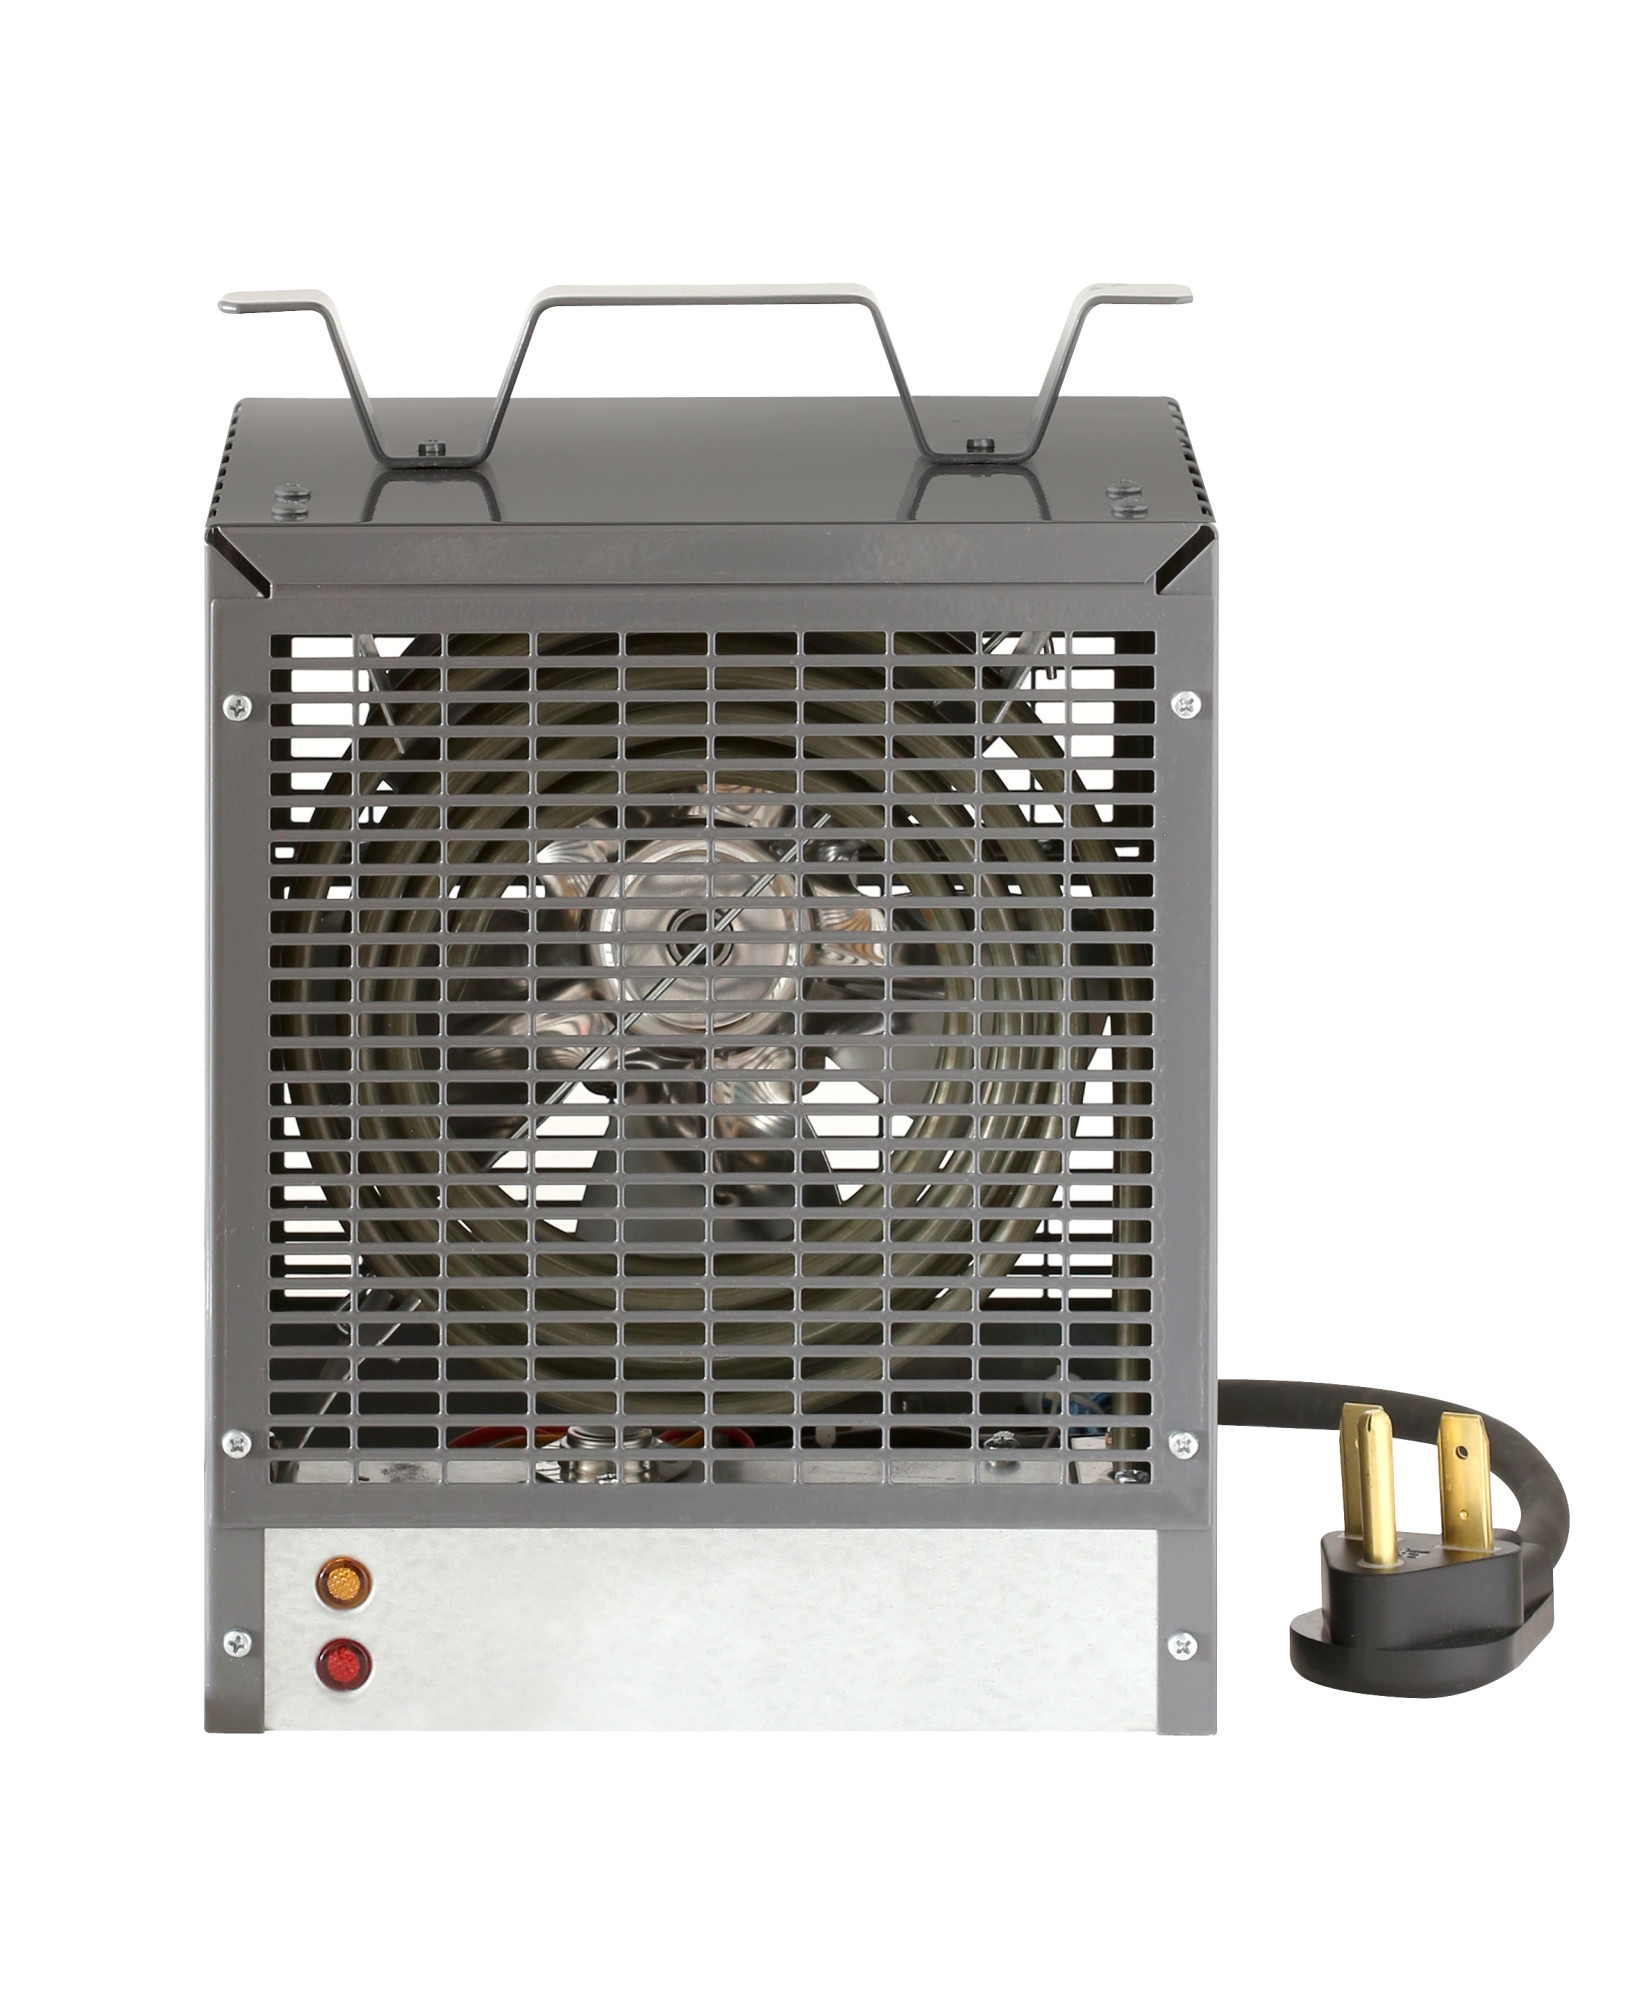 Dimplex Pc6025w31 Details About Dimplex Dch4831lg 4800 Watt Portable Open Motor Construction Heater Grey